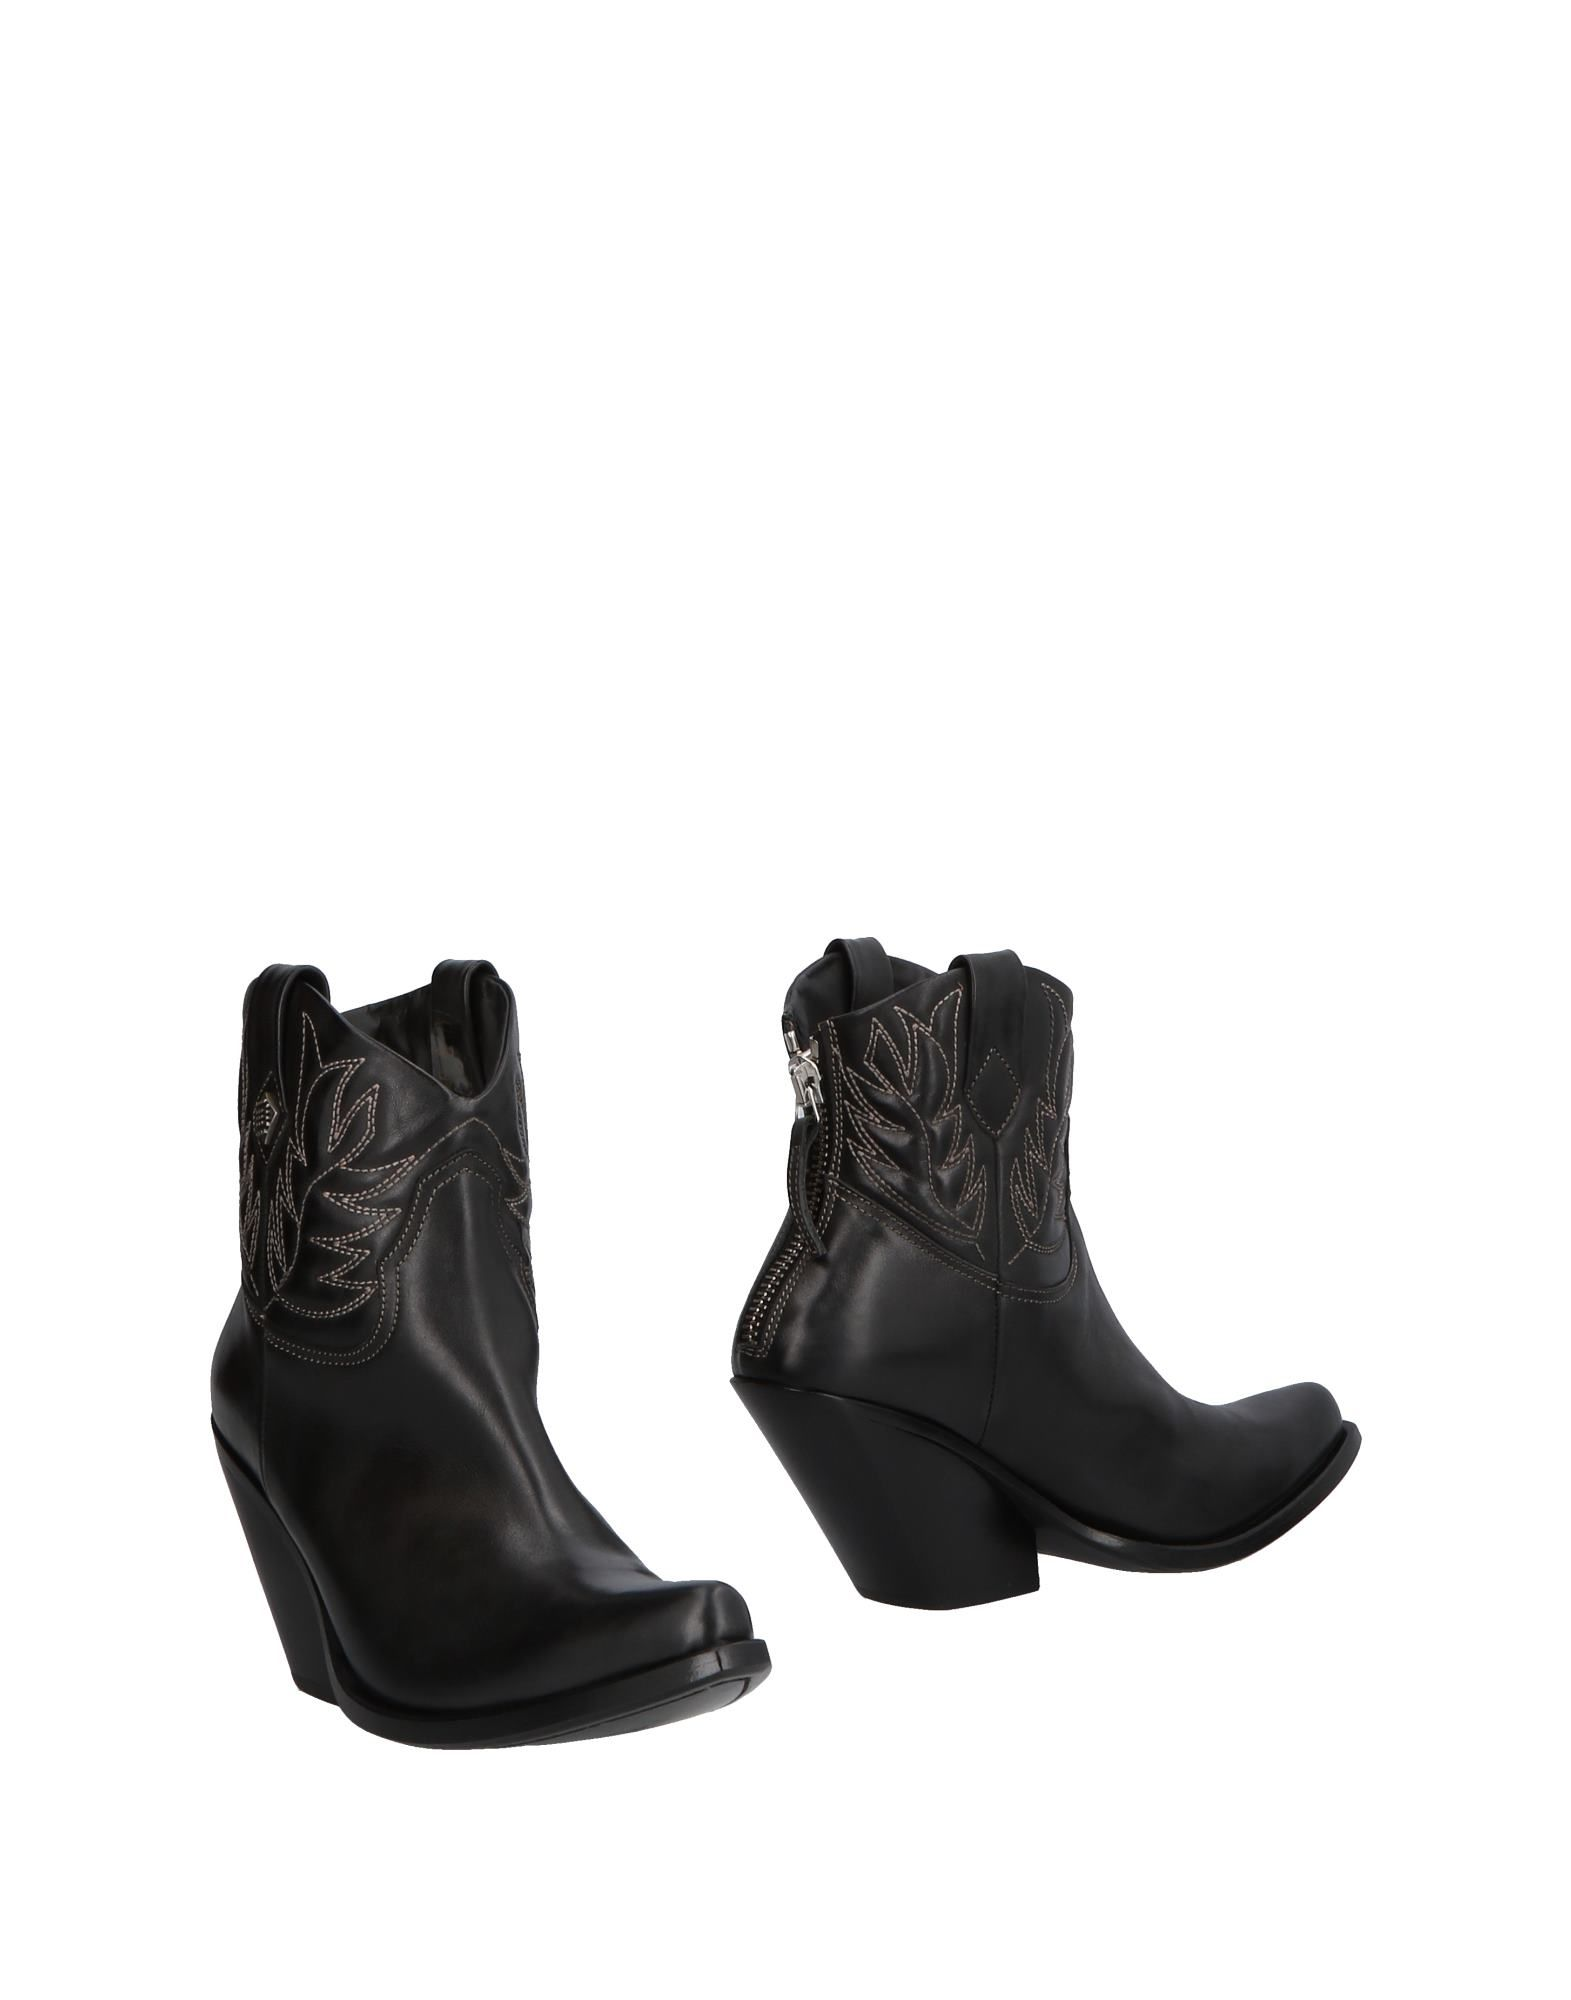 Materia Prima By Goffredo Fantini Ankle Boot - Women Fantini Materia Prima By Goffredo Fantini Women Ankle Boots online on  Australia - 11503259RB 733796